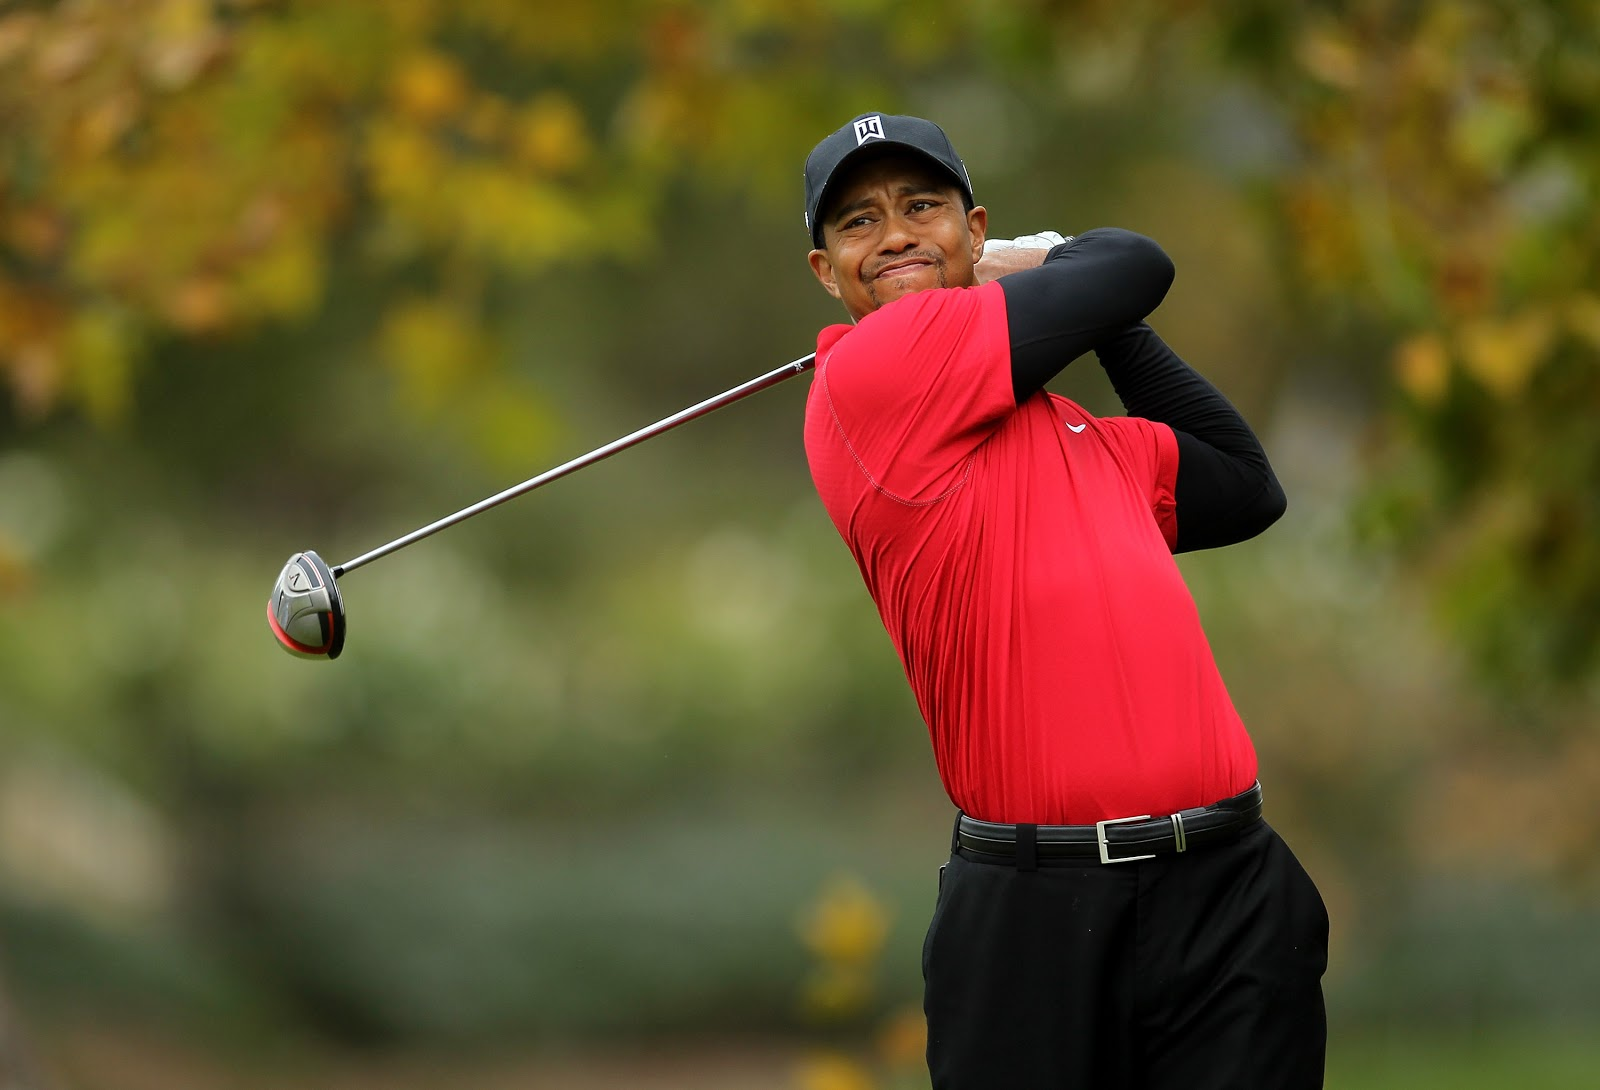 tiger woods improving his brand image They want to move away from the brand and negative reputation so they are not associated with the individual or company and what has happened that they perceive to be hurtful  tiger woods.